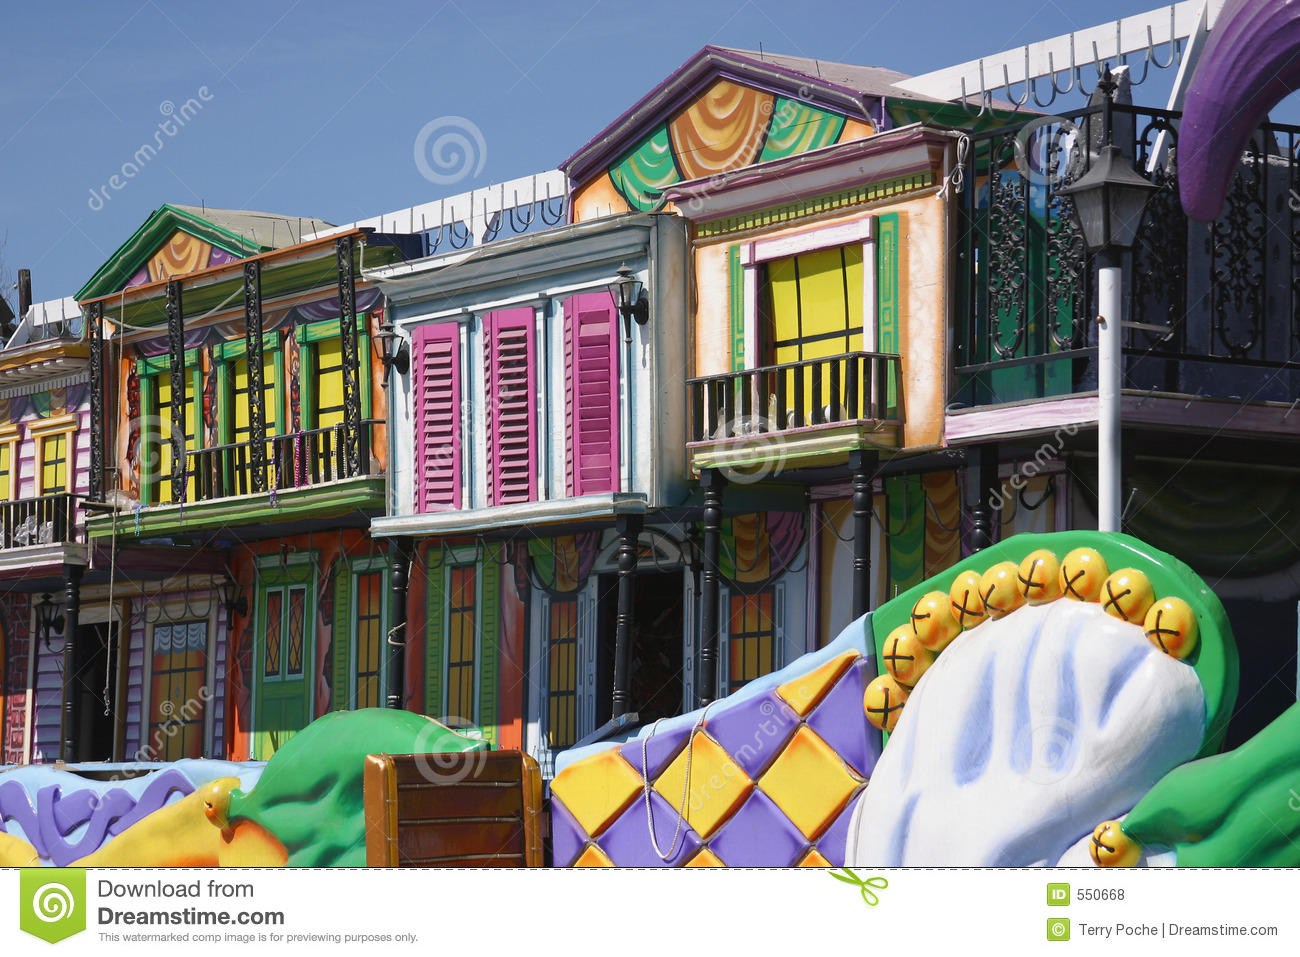 Download Colorful Mardi Gras Float Details Stock Photo - Image of gras, tuesday: 550668